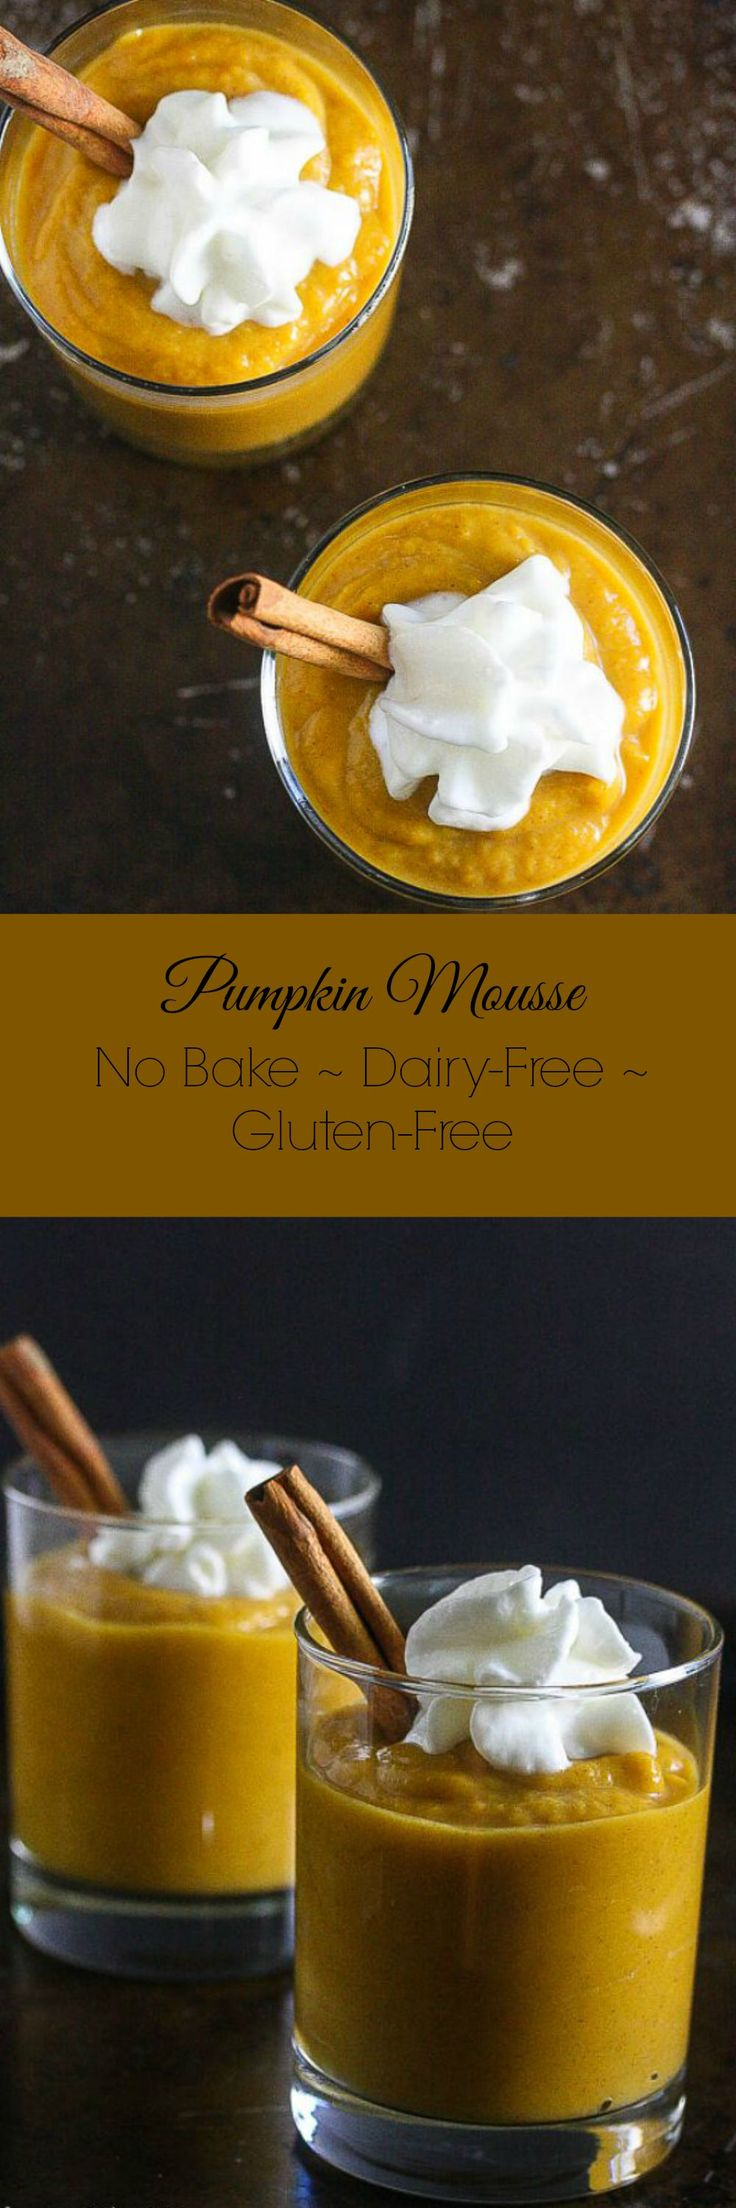 cheap mens wallets This Pumpkin Mousse is dairy free  gluten free and takes 5 minutes to make  It  39 s packed with vitamins and minerals and makes a healthy snack   LoveMySilk  TopItTuesday